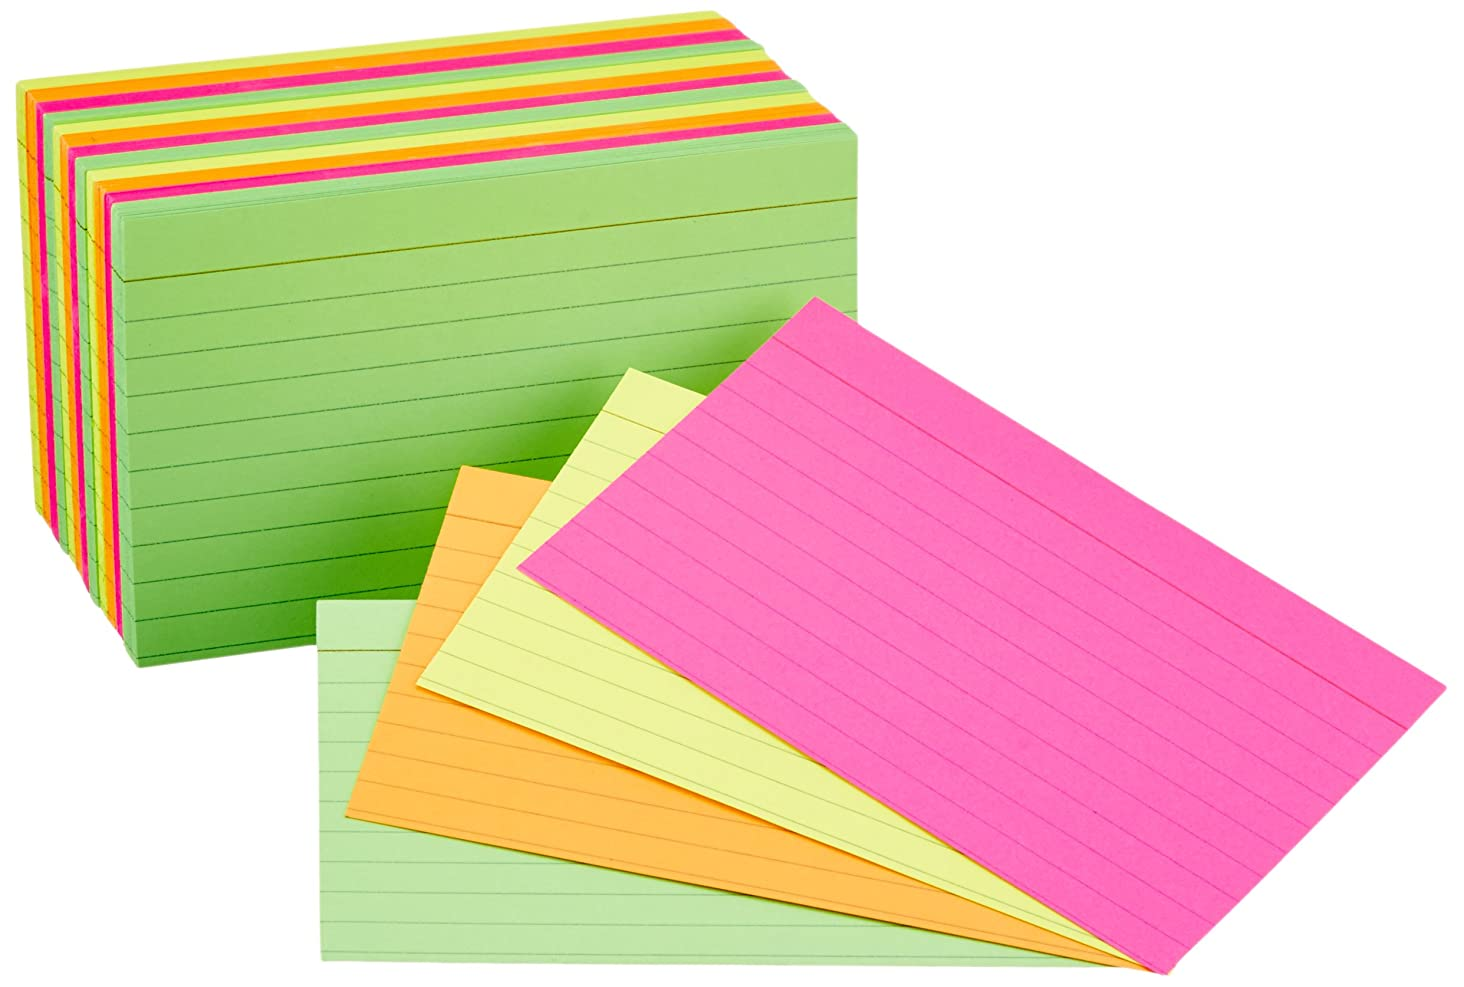 AmazonBasics Ruled Index Flash Cards, Assorted Neon Colored, 3x5 Inch, 300-Count